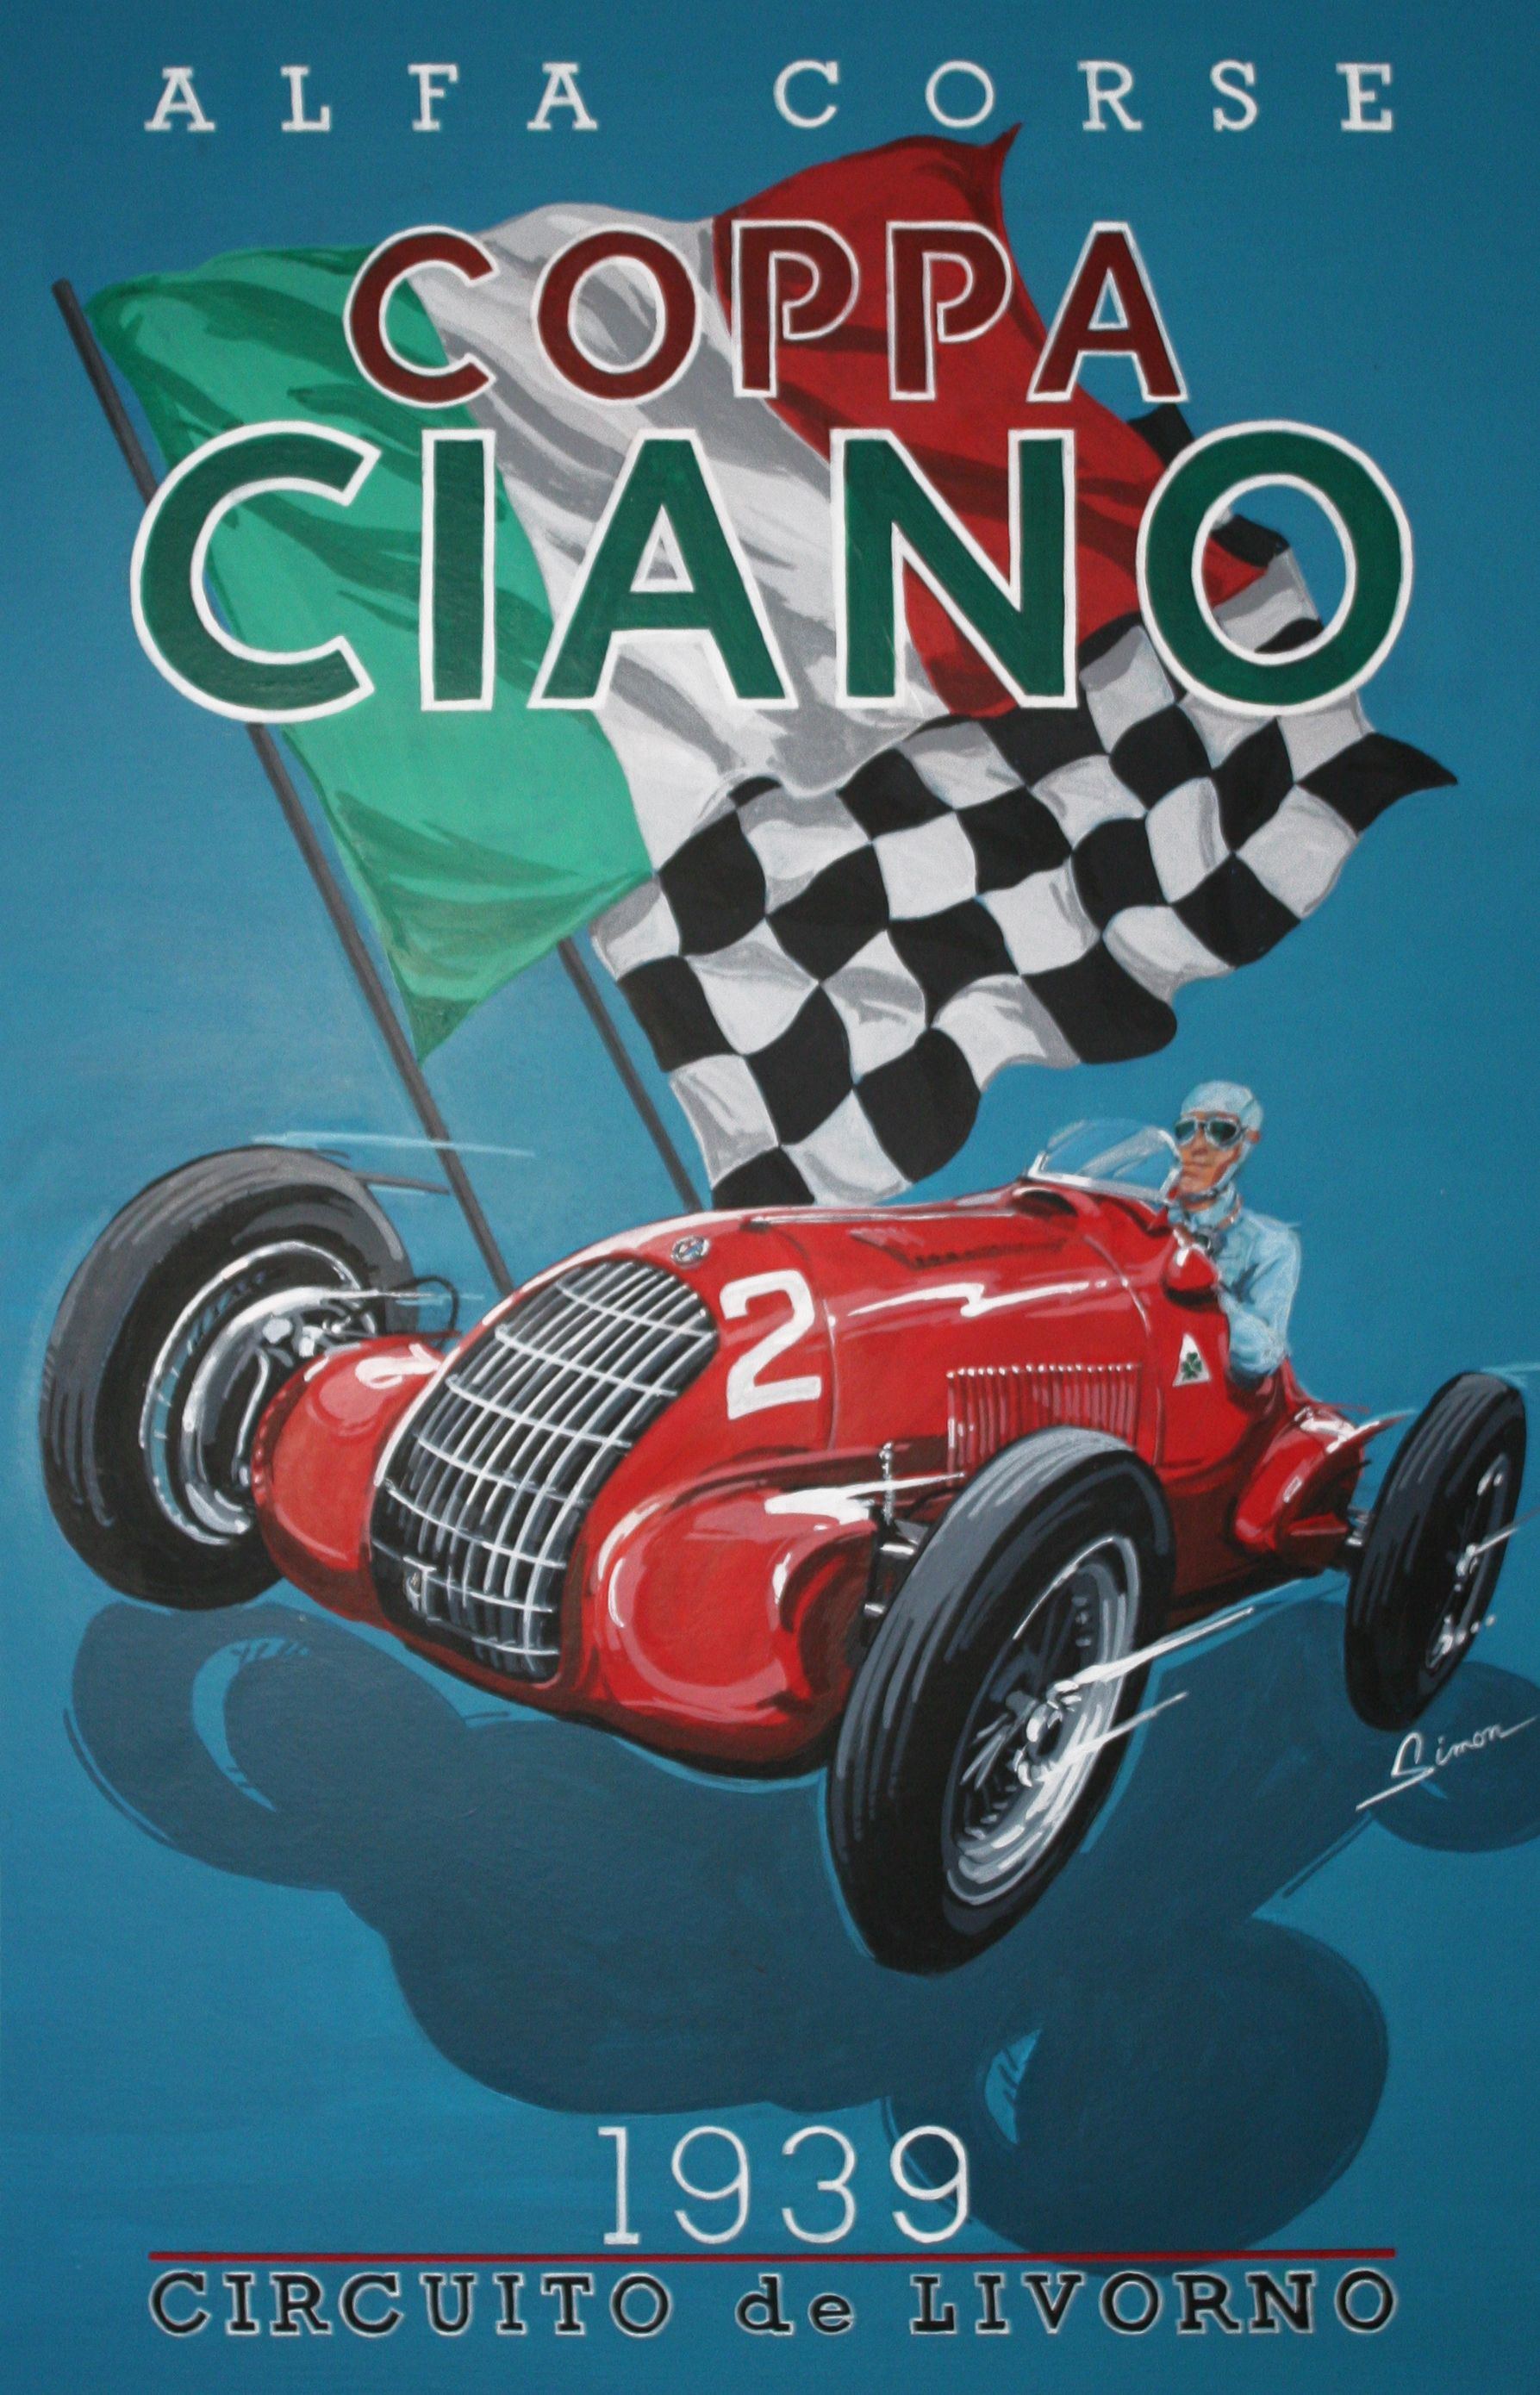 alfa romeo coppa ciano grand prix vintage style racing poster by dennis simon this poster. Black Bedroom Furniture Sets. Home Design Ideas